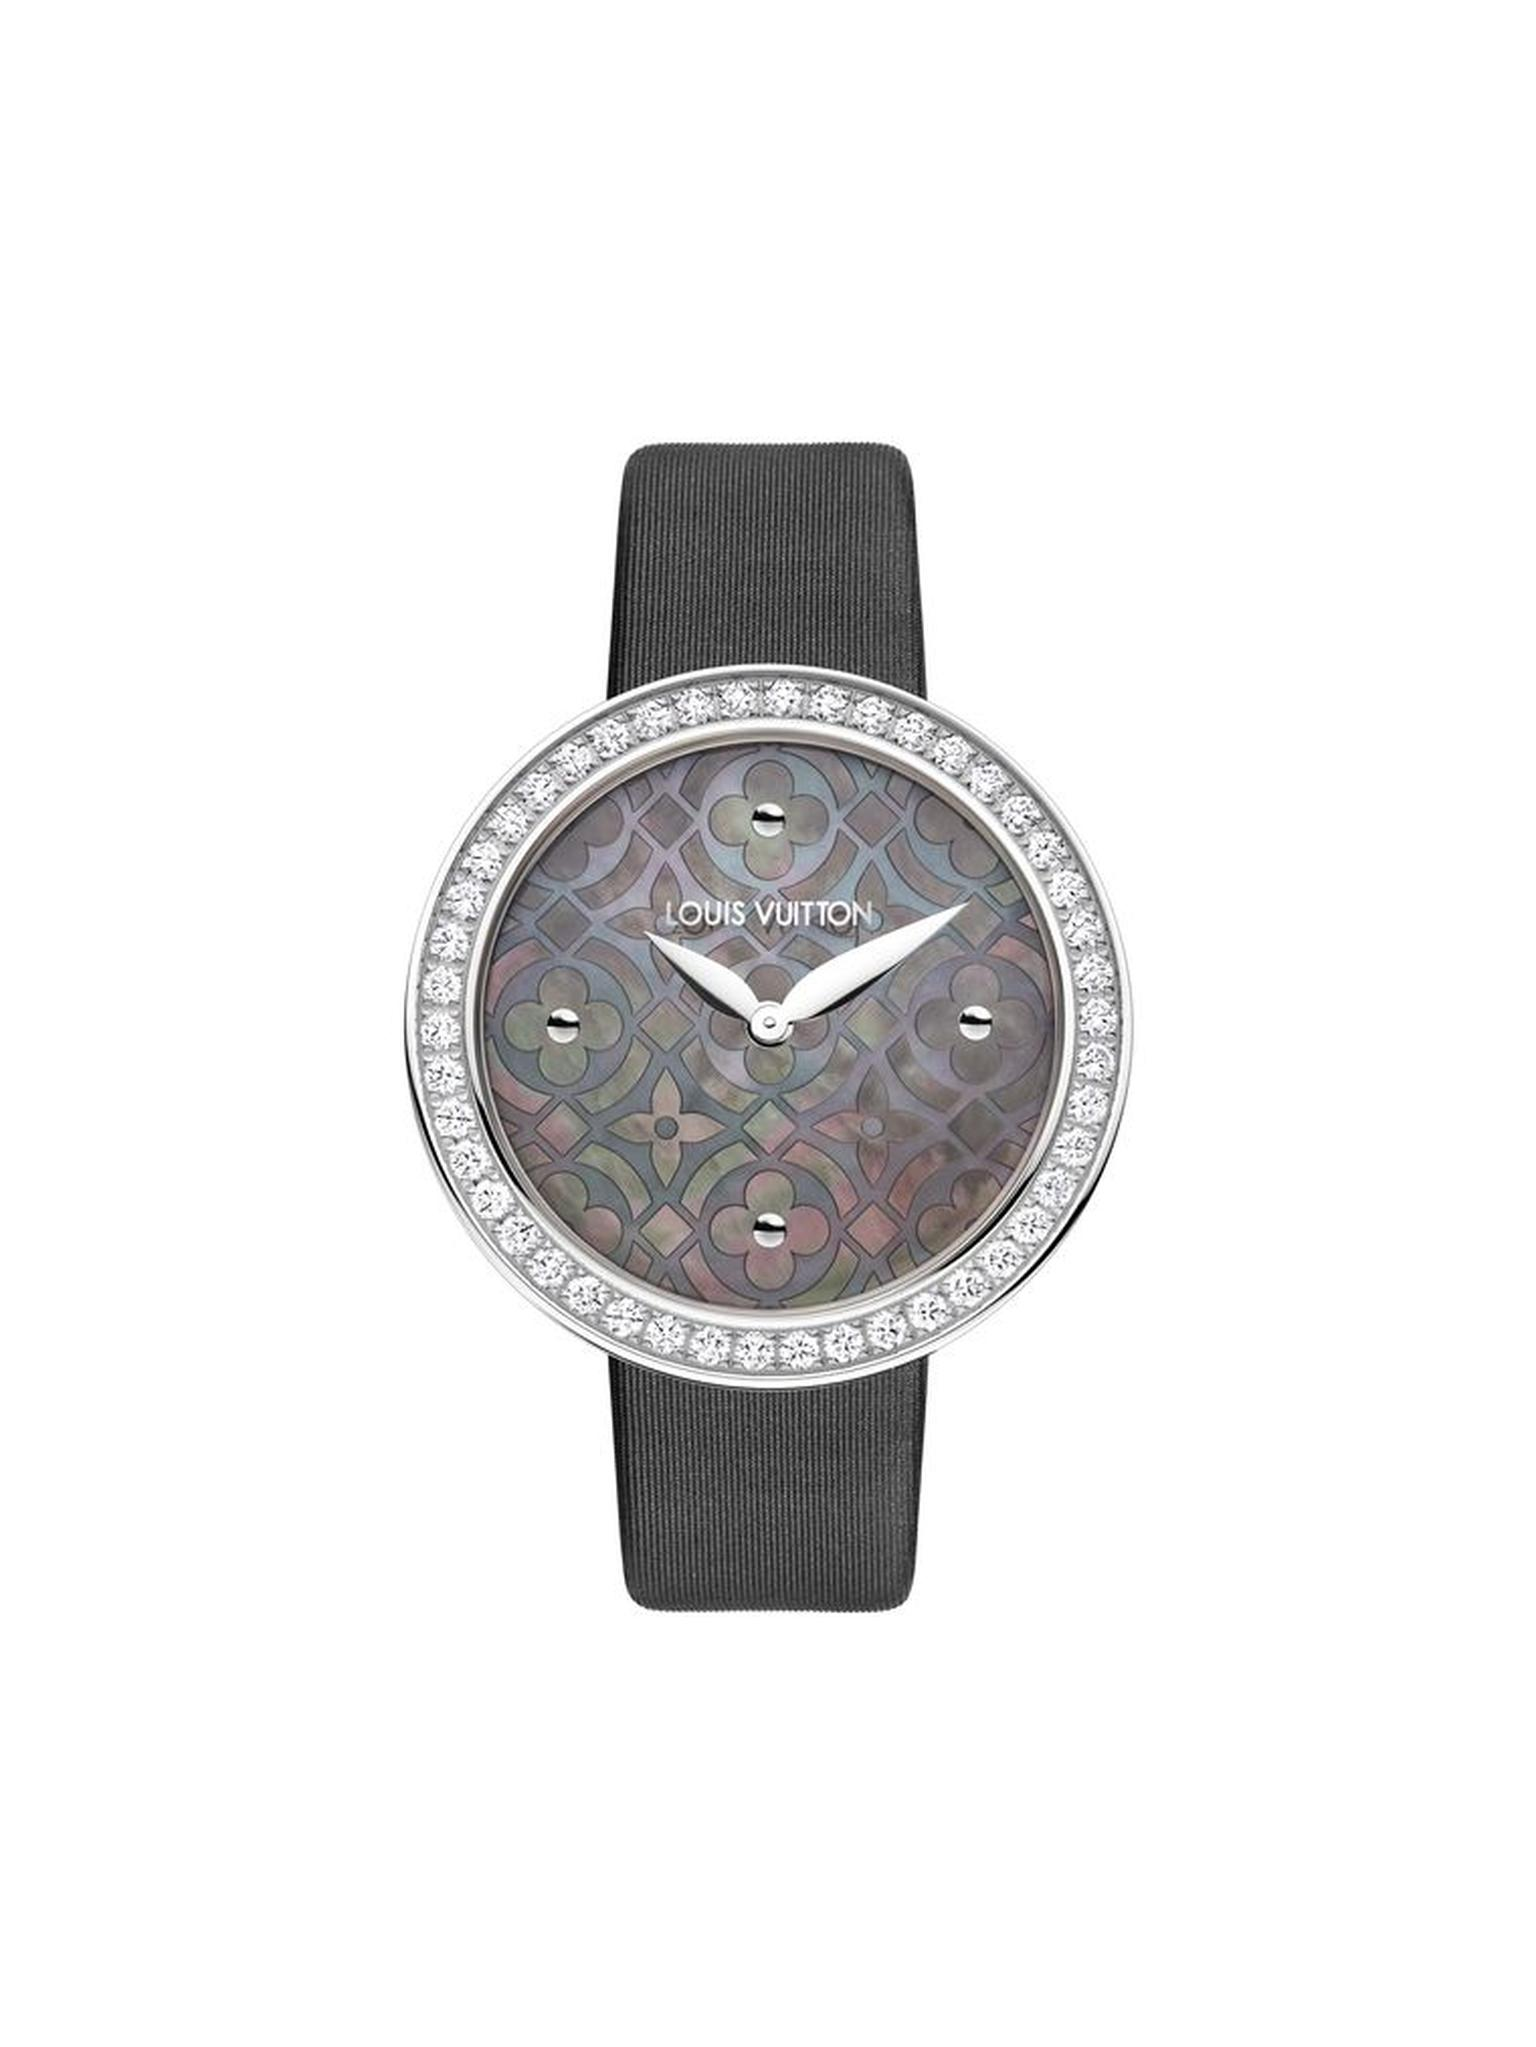 Louis Vuitton Dentelle de Monogram watch with a grey Polynesian pearl dial